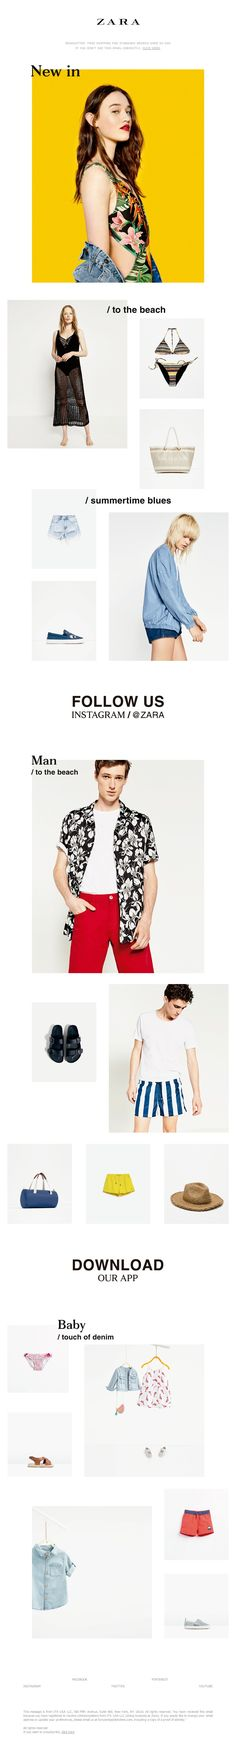 ZARA - Weekly | This is new in. Monday, June 13